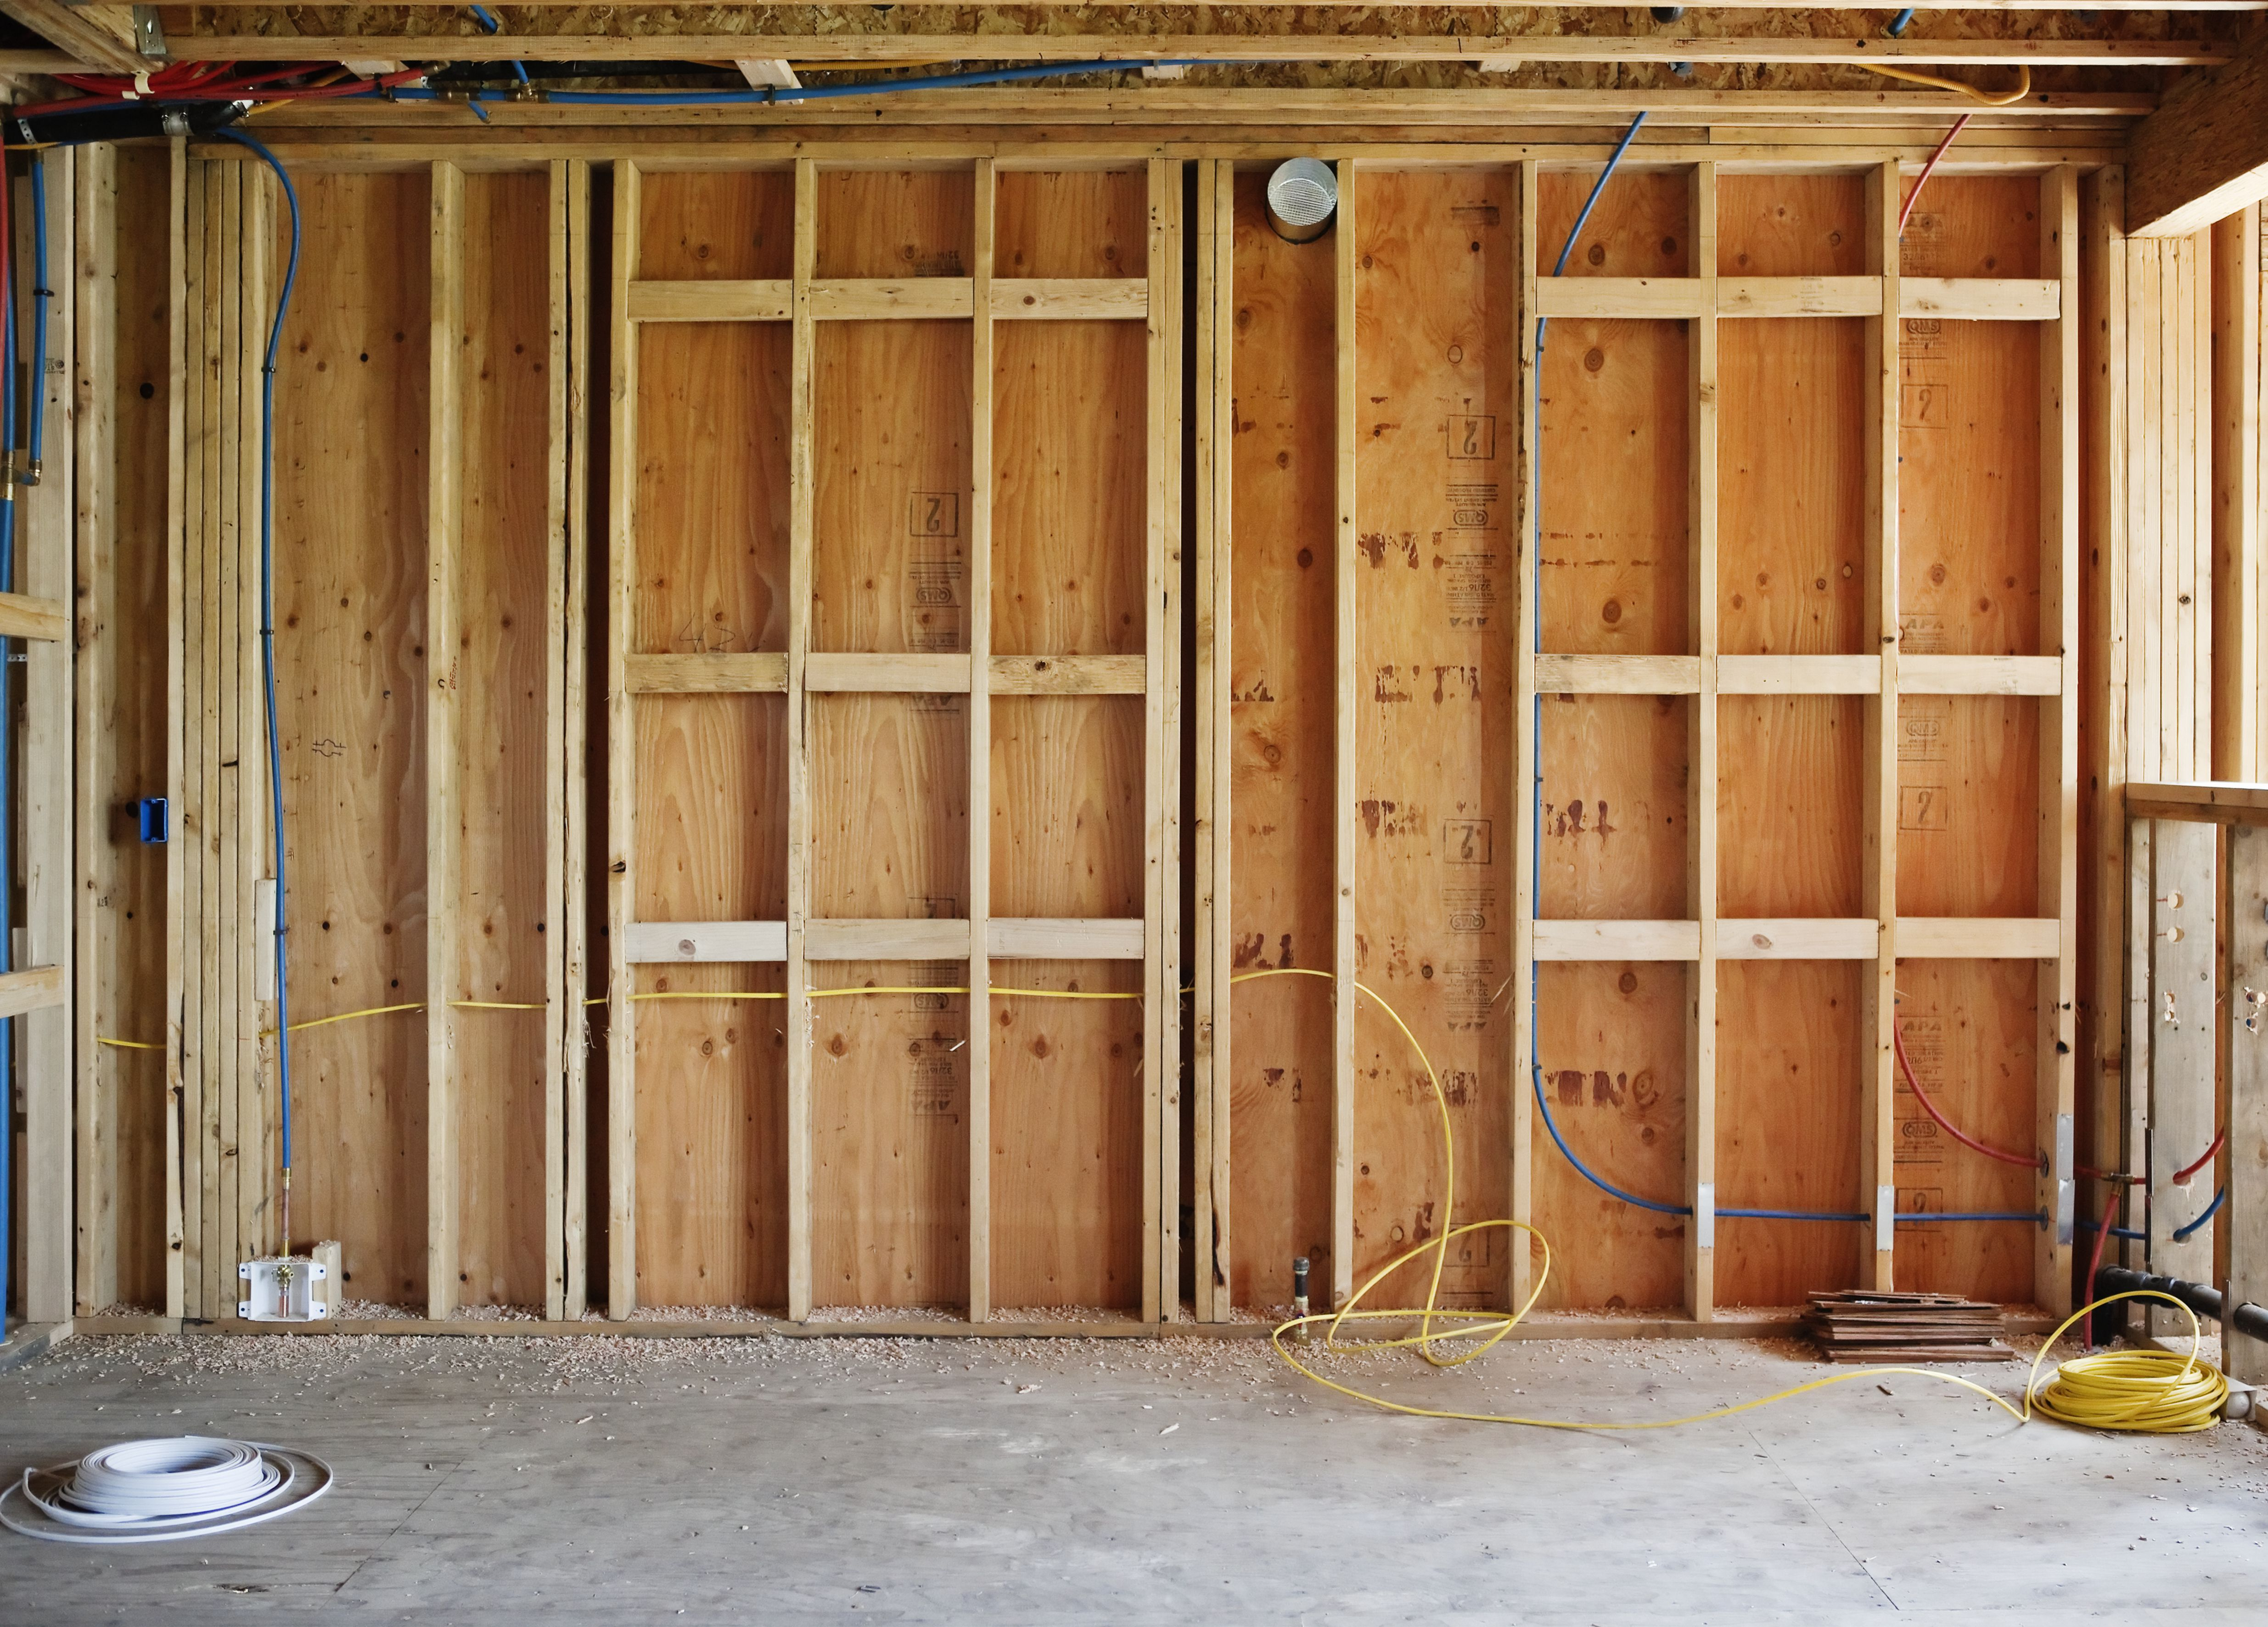 How to Tell If a Wall Is Load-Bearing